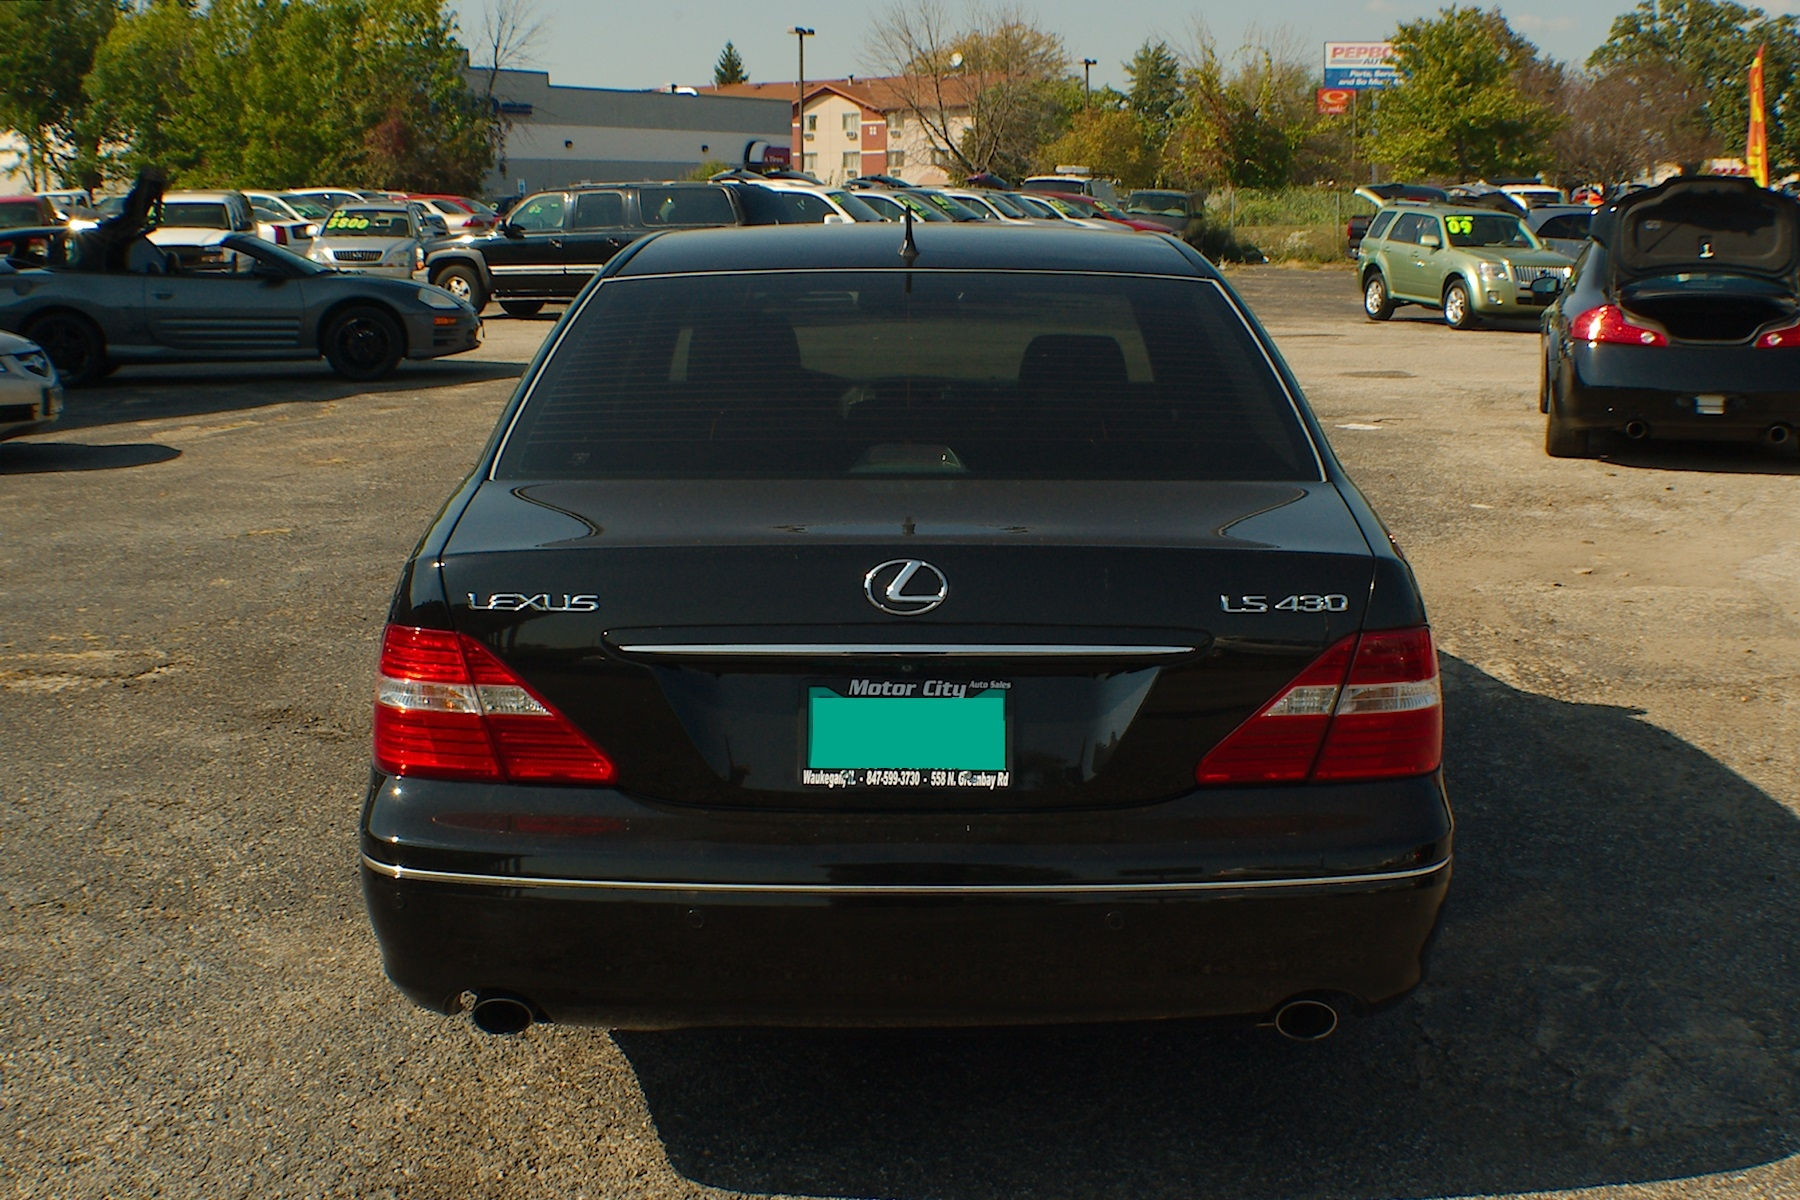 2006 Lexus LS430 Black Sedan Used Car Sale Fox River Grove Grayslake Volo Waucanda